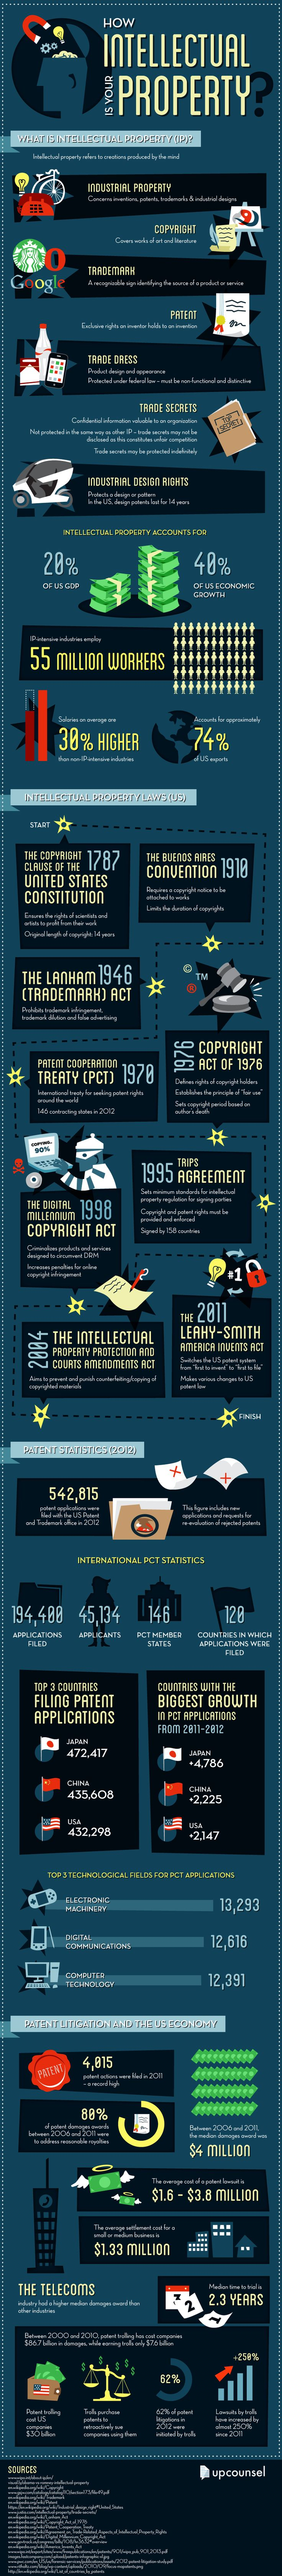 Did you know that intellectual property (IP) accounts for 20% of the US gross domestic product (GDP) and for 40% of the country's economic gains? Or that IP-intensive industries employ close to 55 million workers?